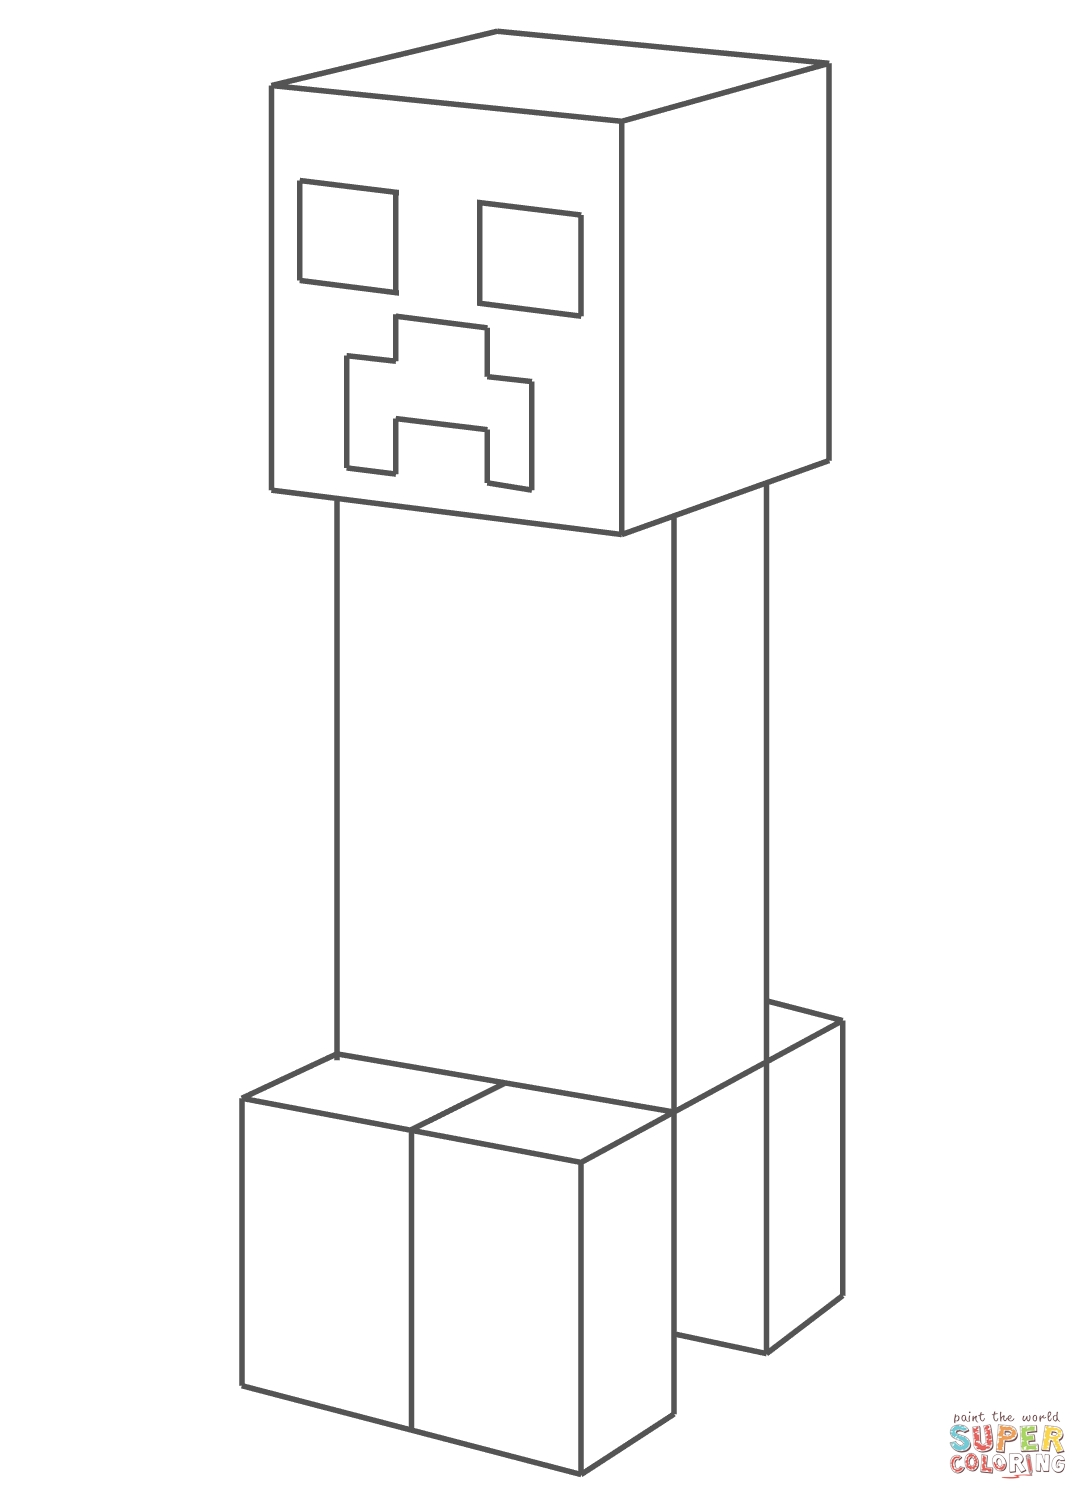 minecraft creeper coloring page - minecraft creeper coloring pages